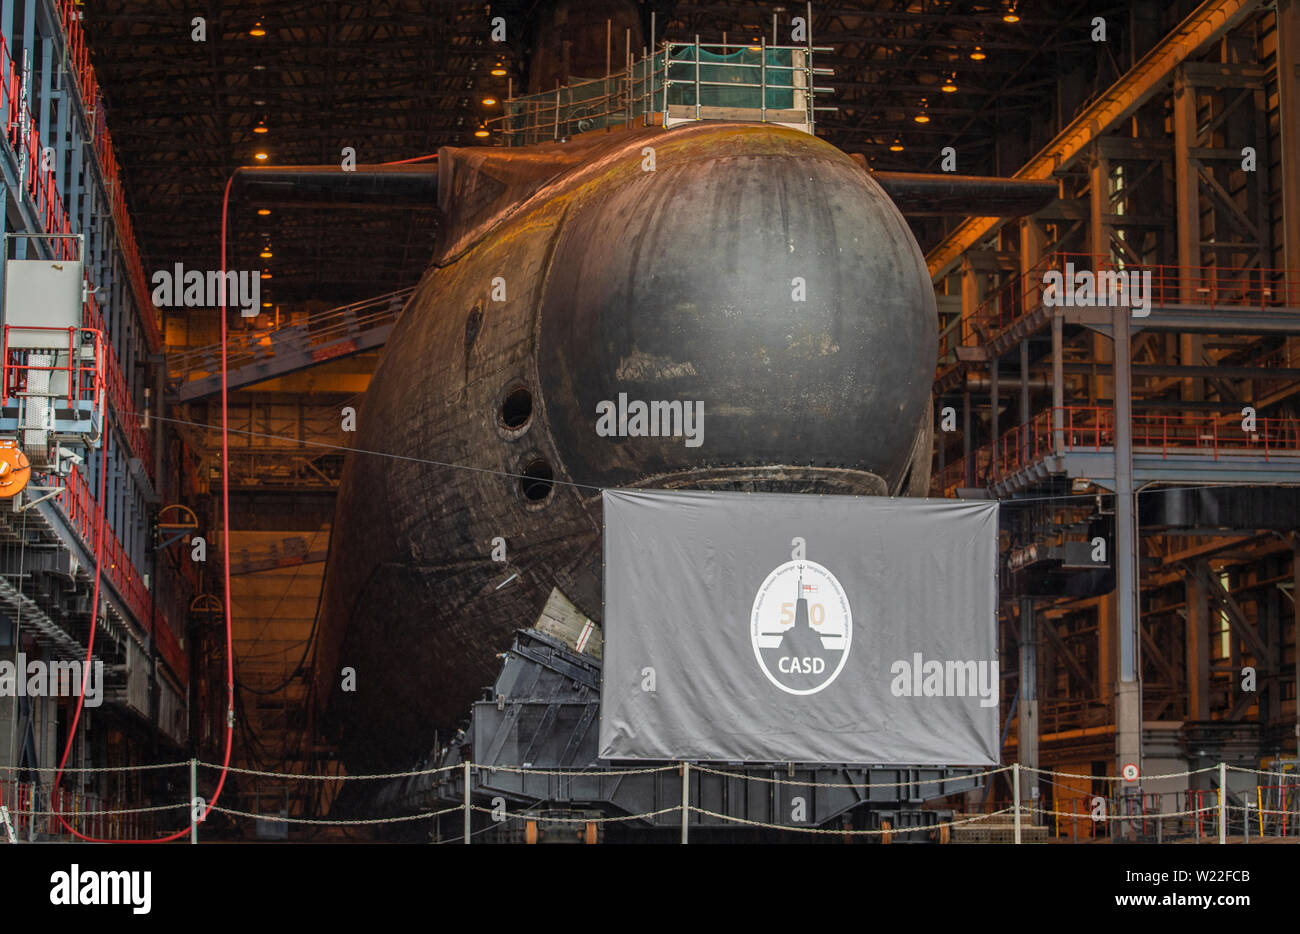 One of the Vanguard Class Ship nuclear submarines in dry dock at HM Naval Base Clyde, the home of the UK Submarine Service at Faslane in Argyll and Bute. - Stock Image